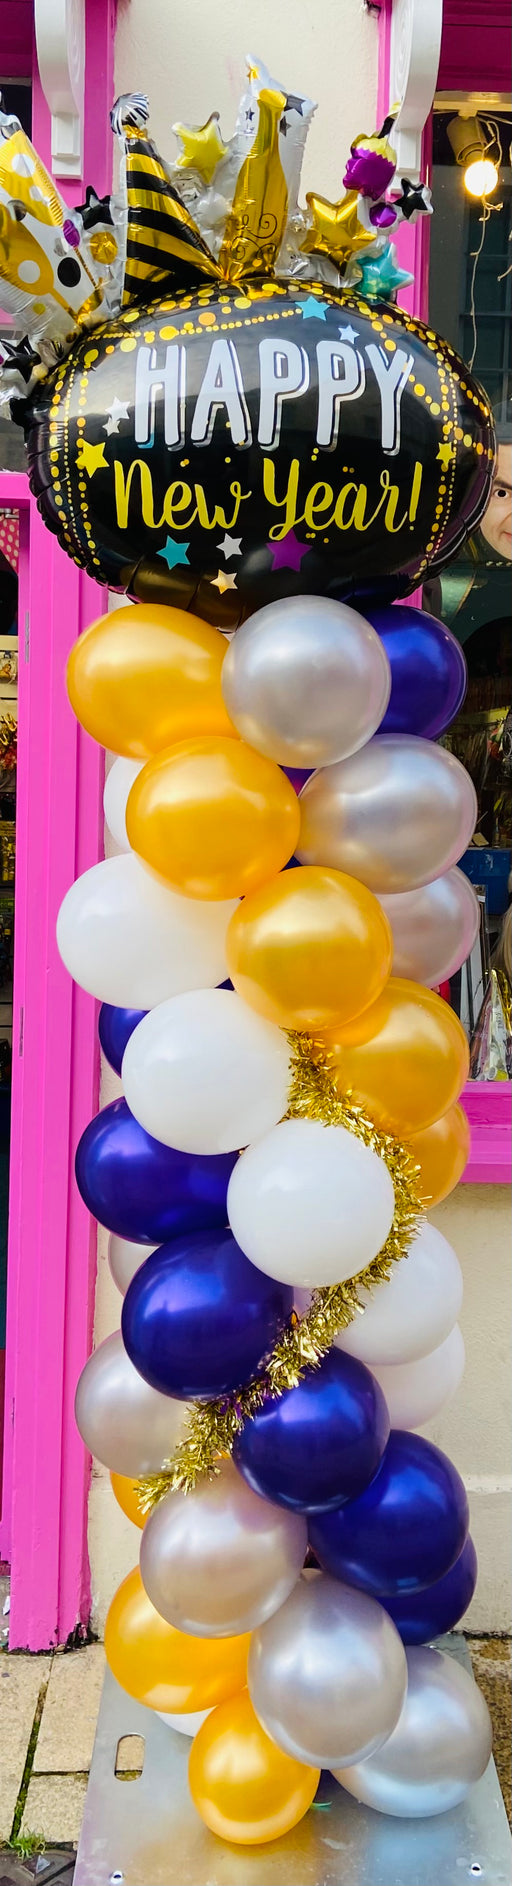 New Years Balloon Column - Celebrate - The Ultimate Balloon & Party Shop